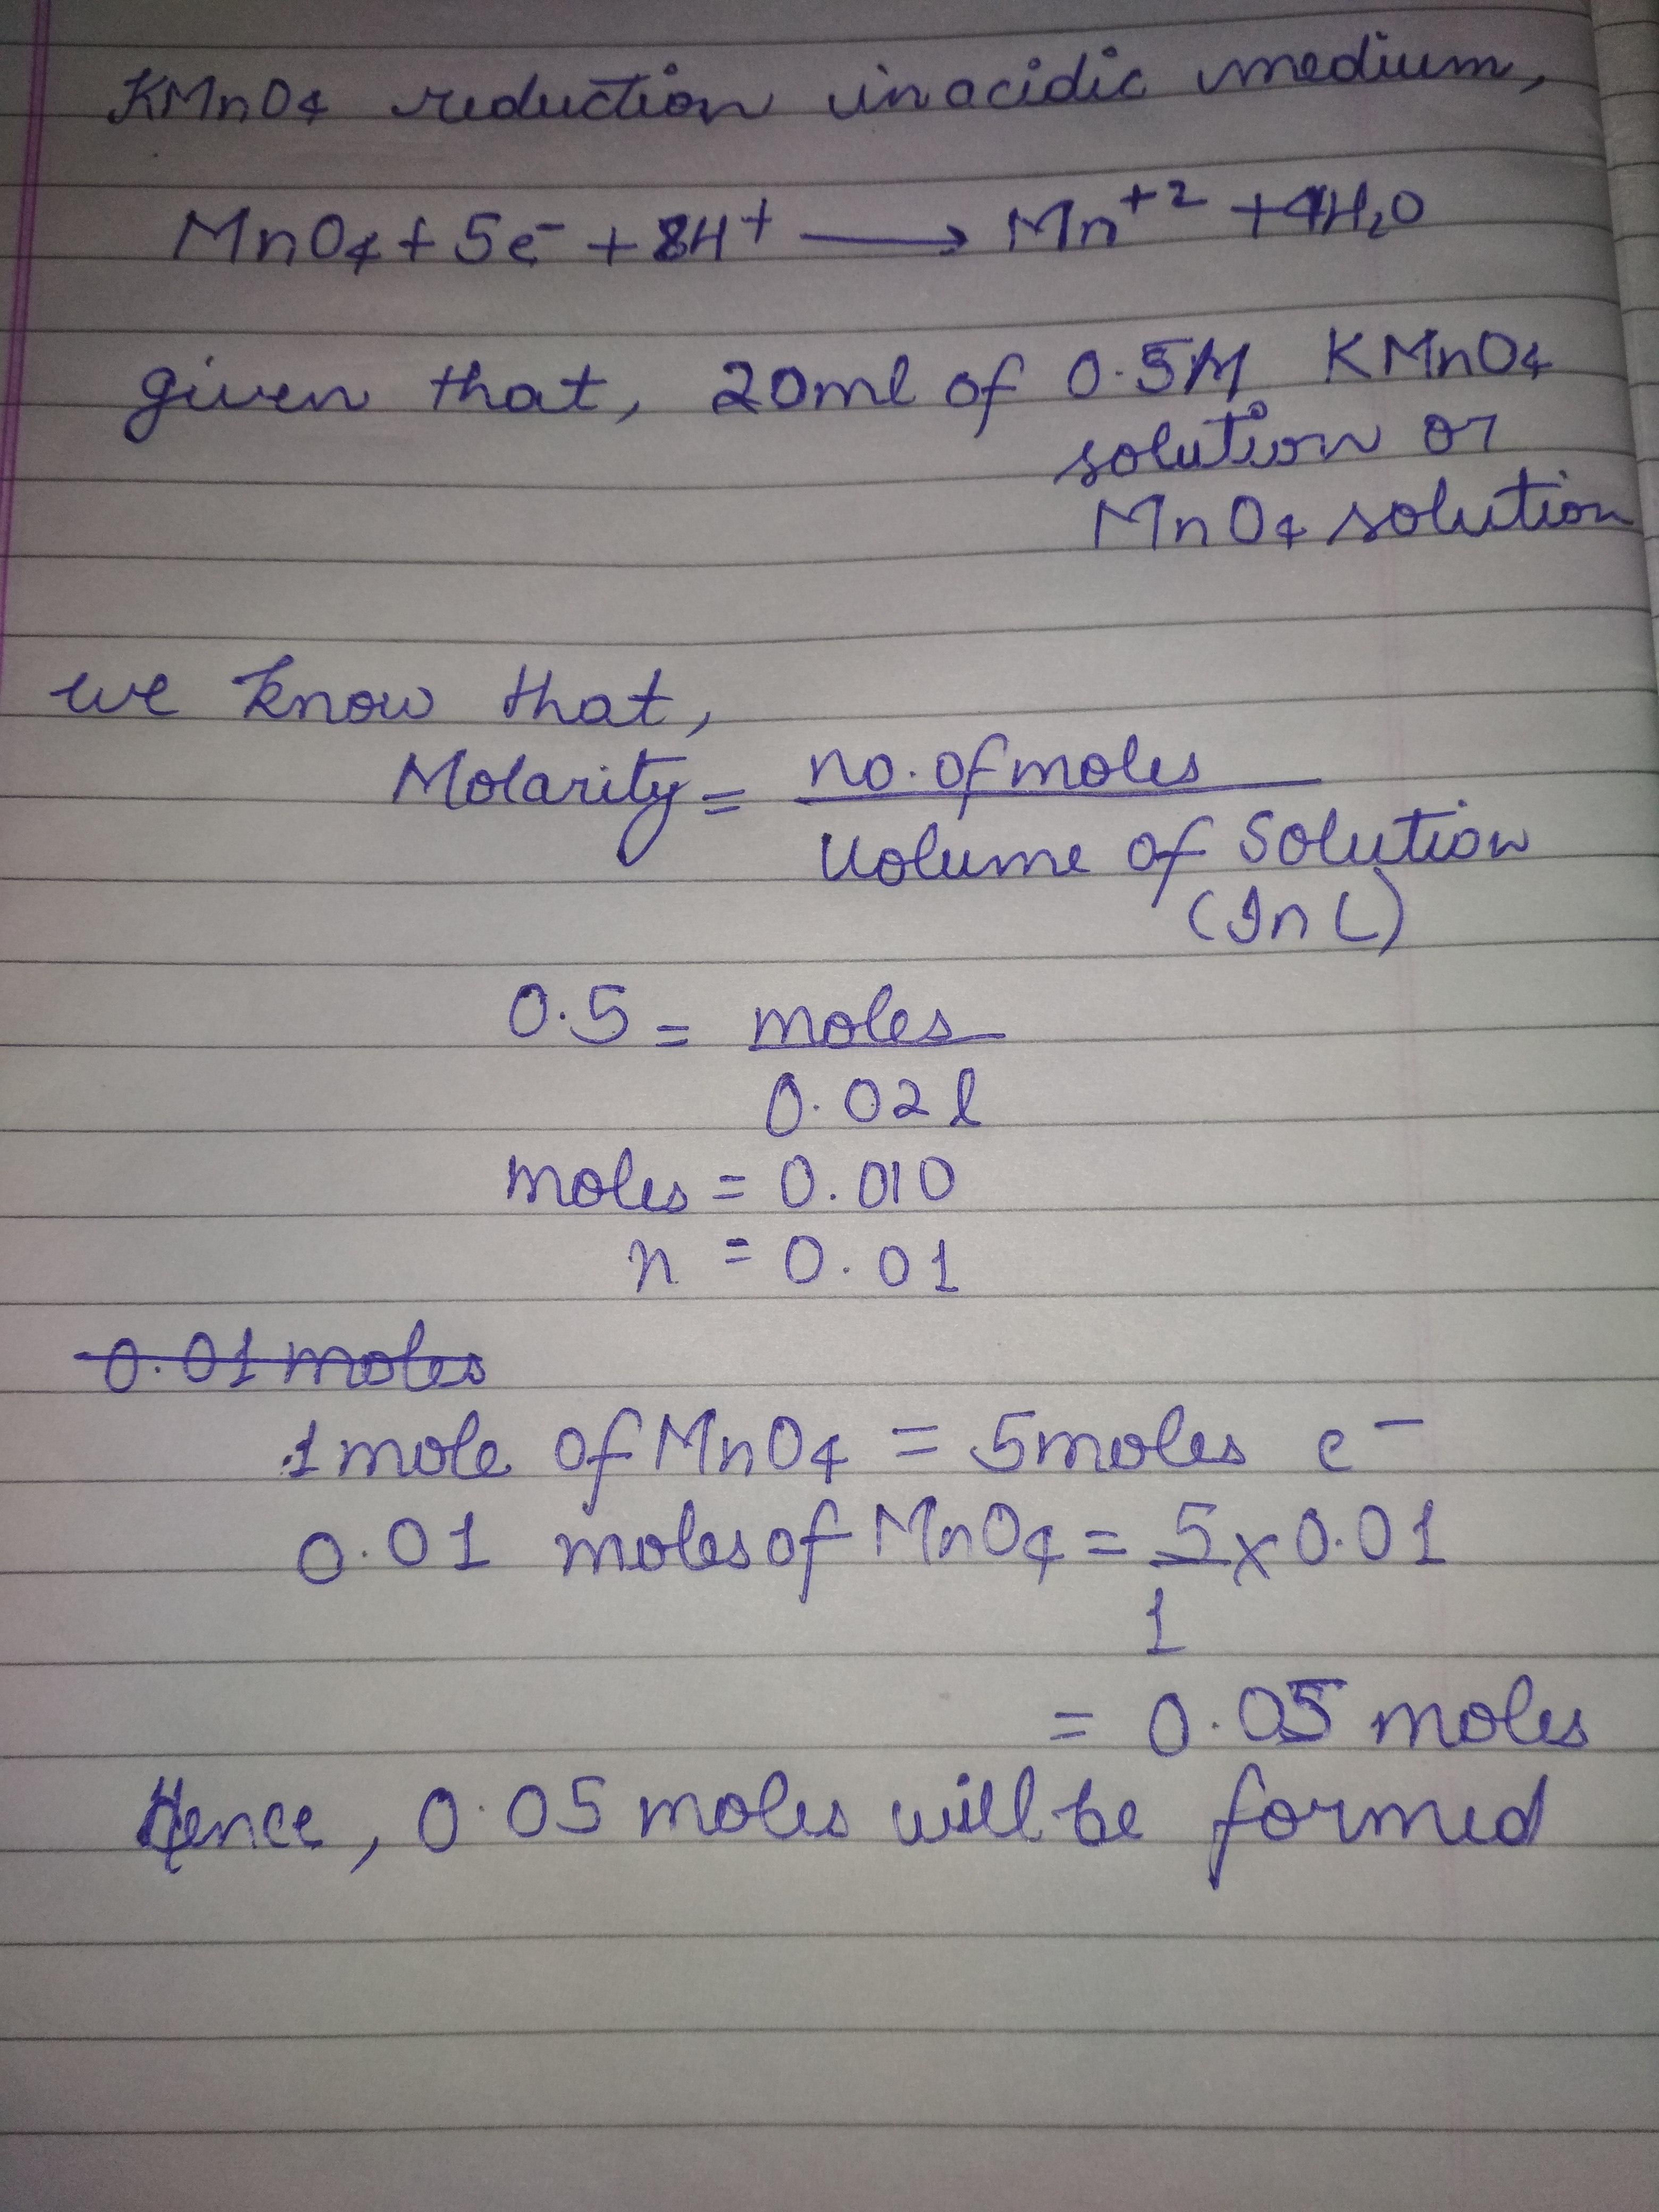 How many moles of electrons are needed for the reduction of 20 ml of